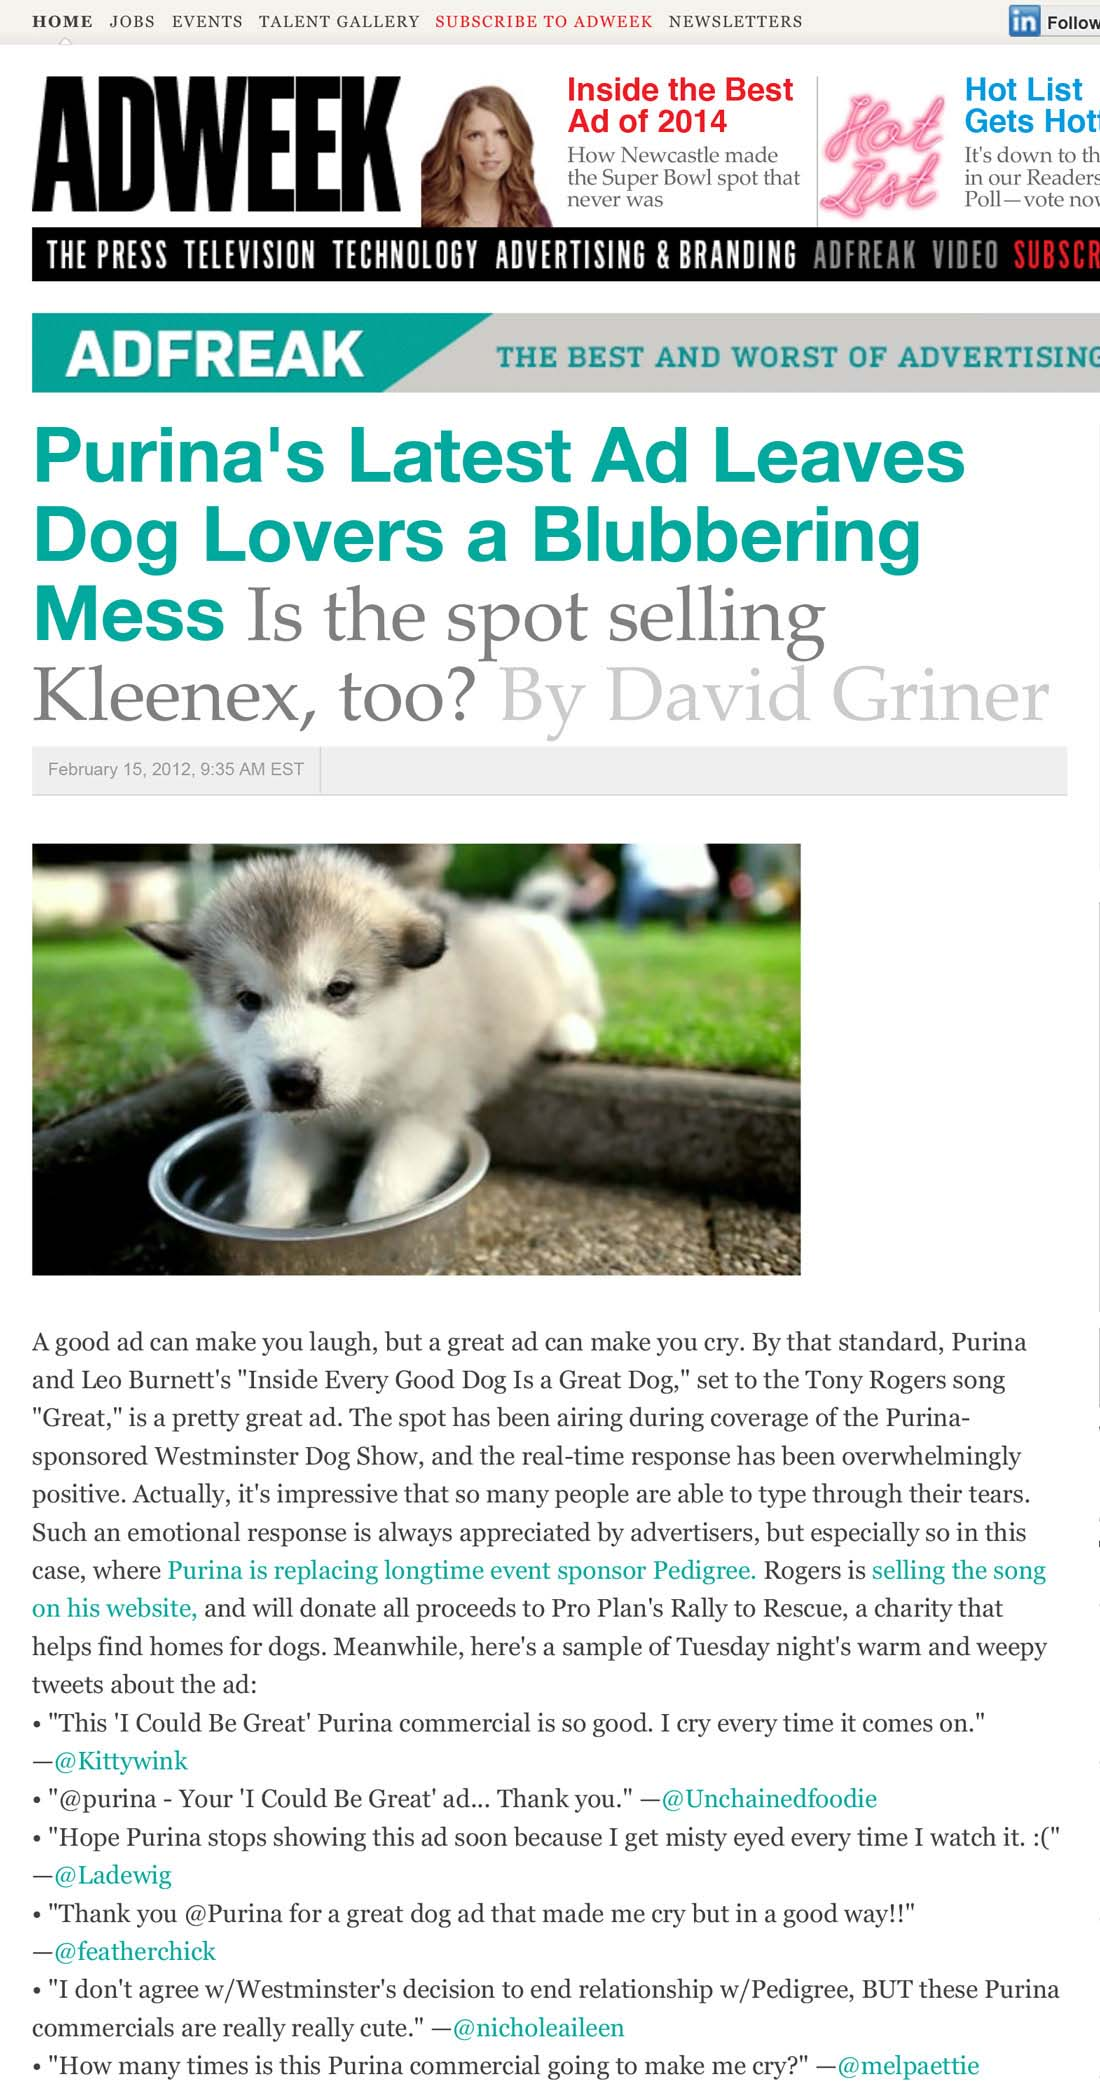 Purina's-Latest-Ad-Leaves-Dog-Lovers-a-Blubbering-Mess-_-Adweek-1